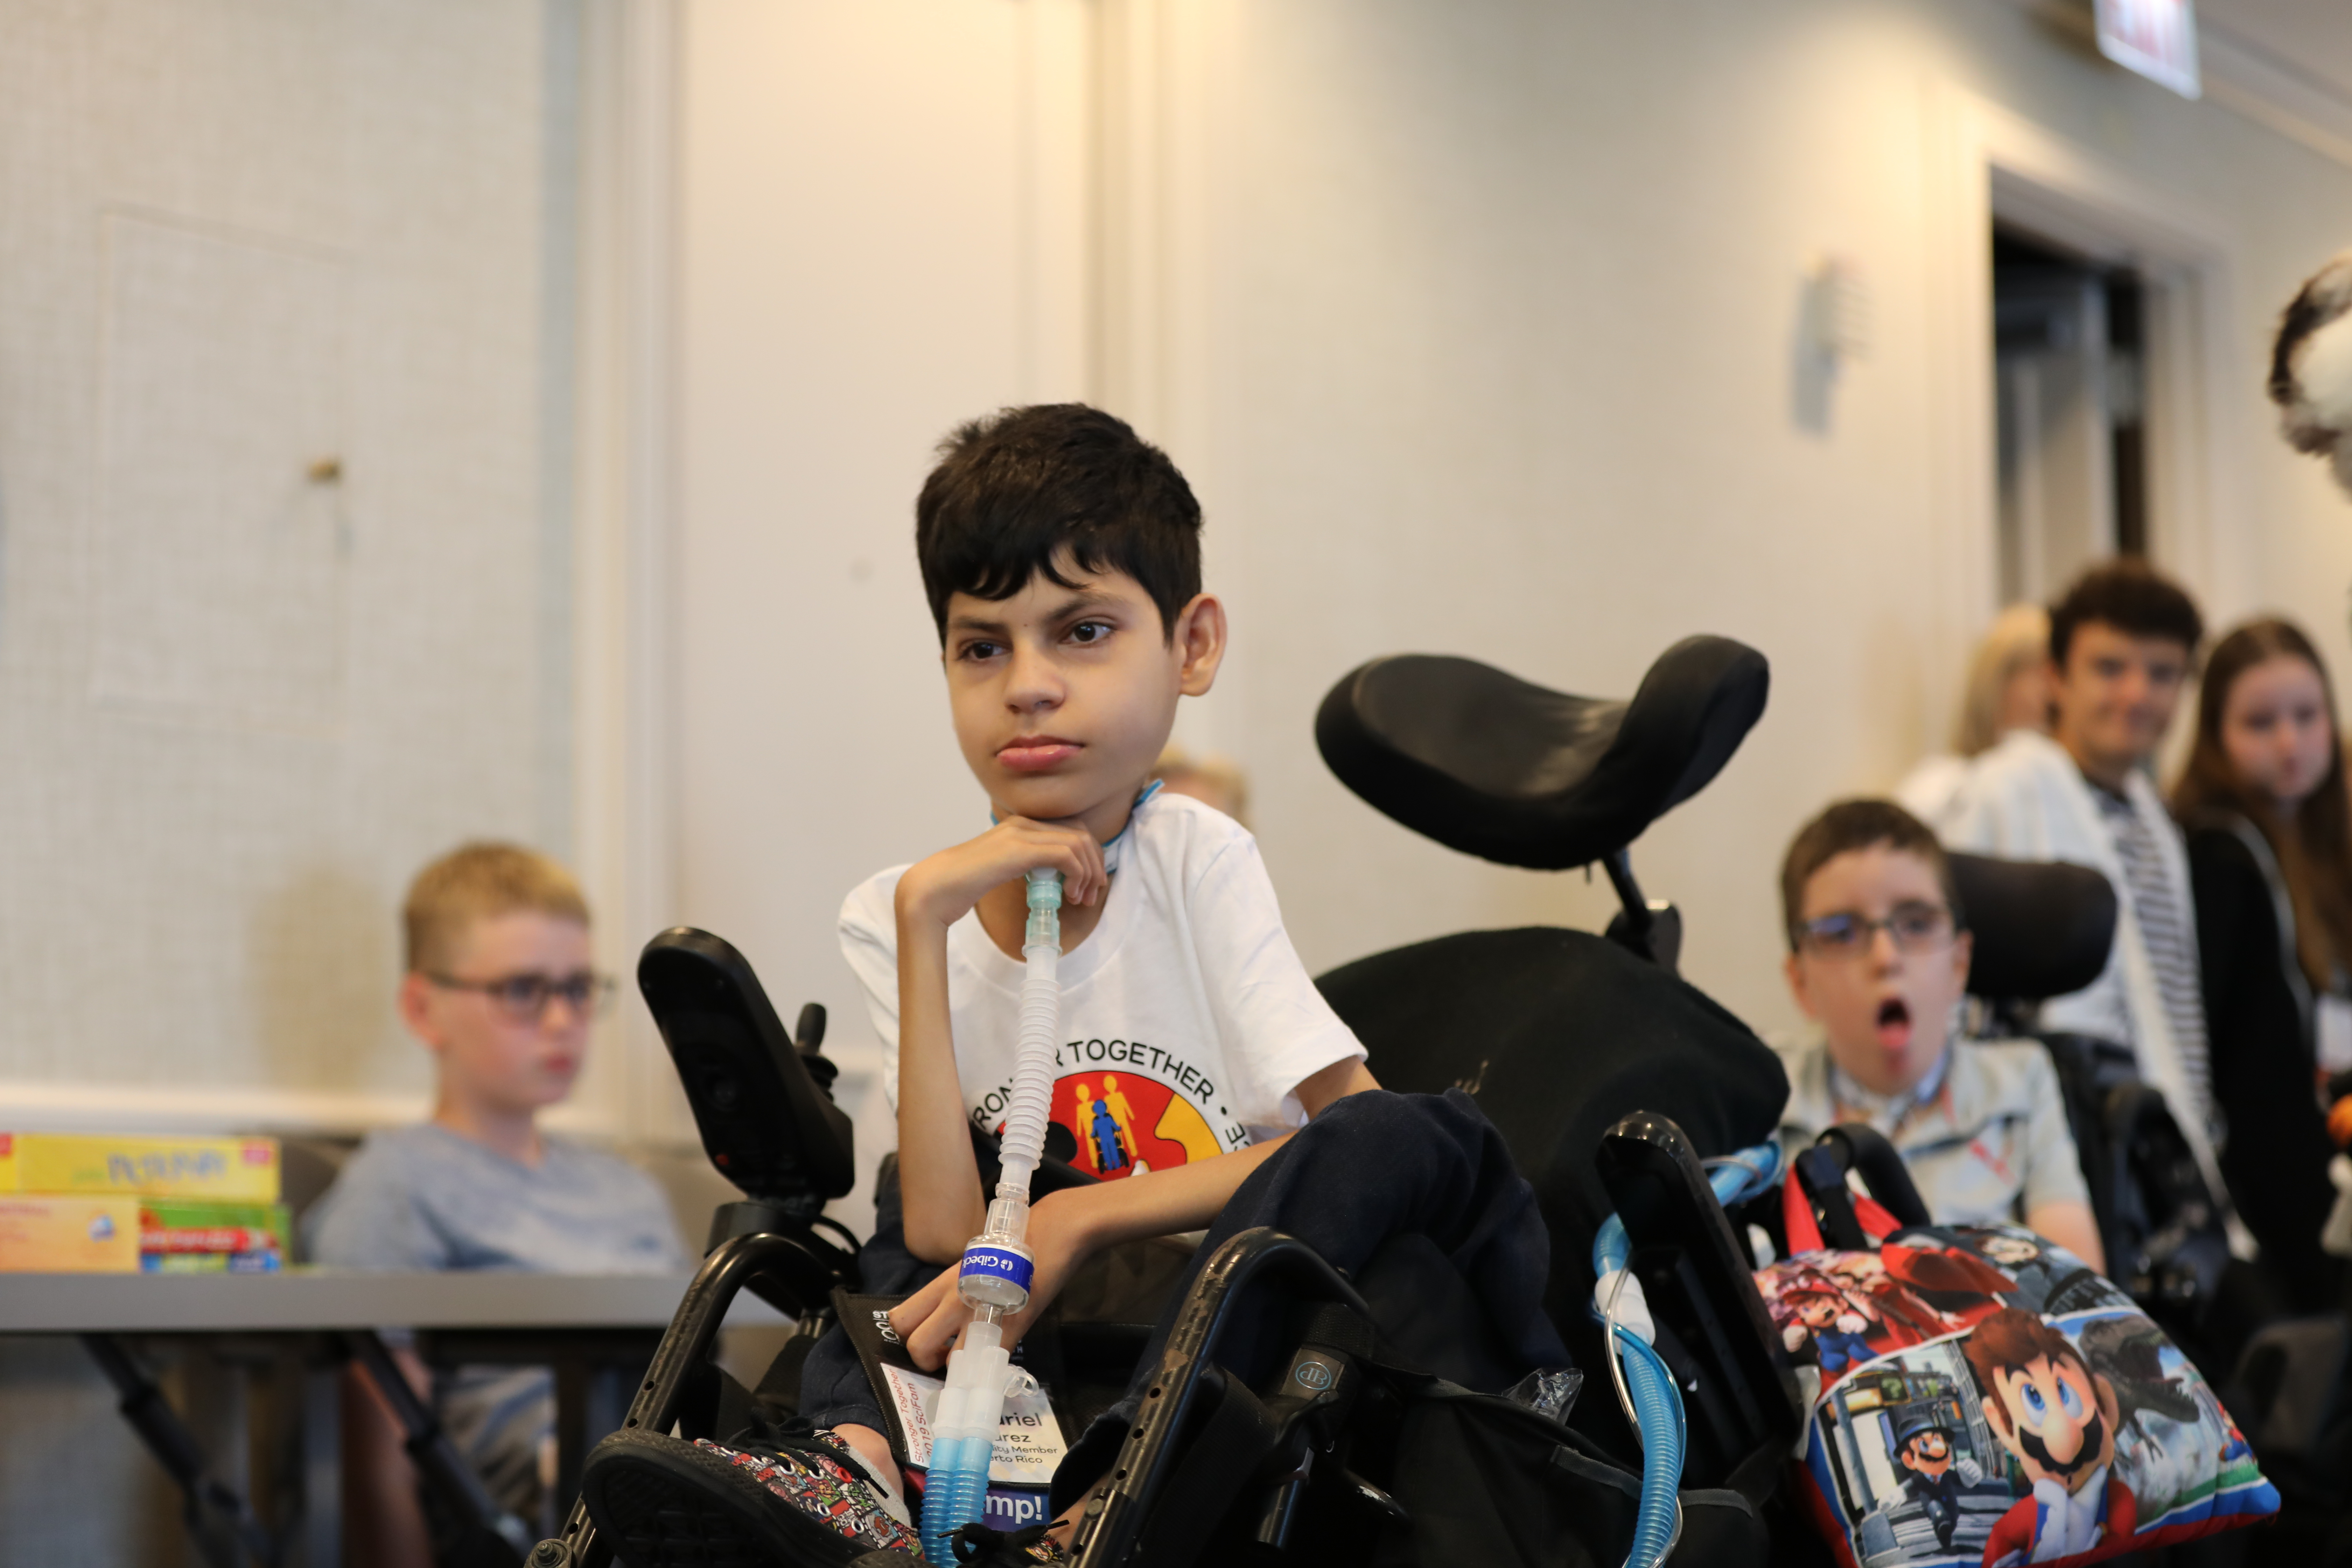 A young male child in a wheelchair